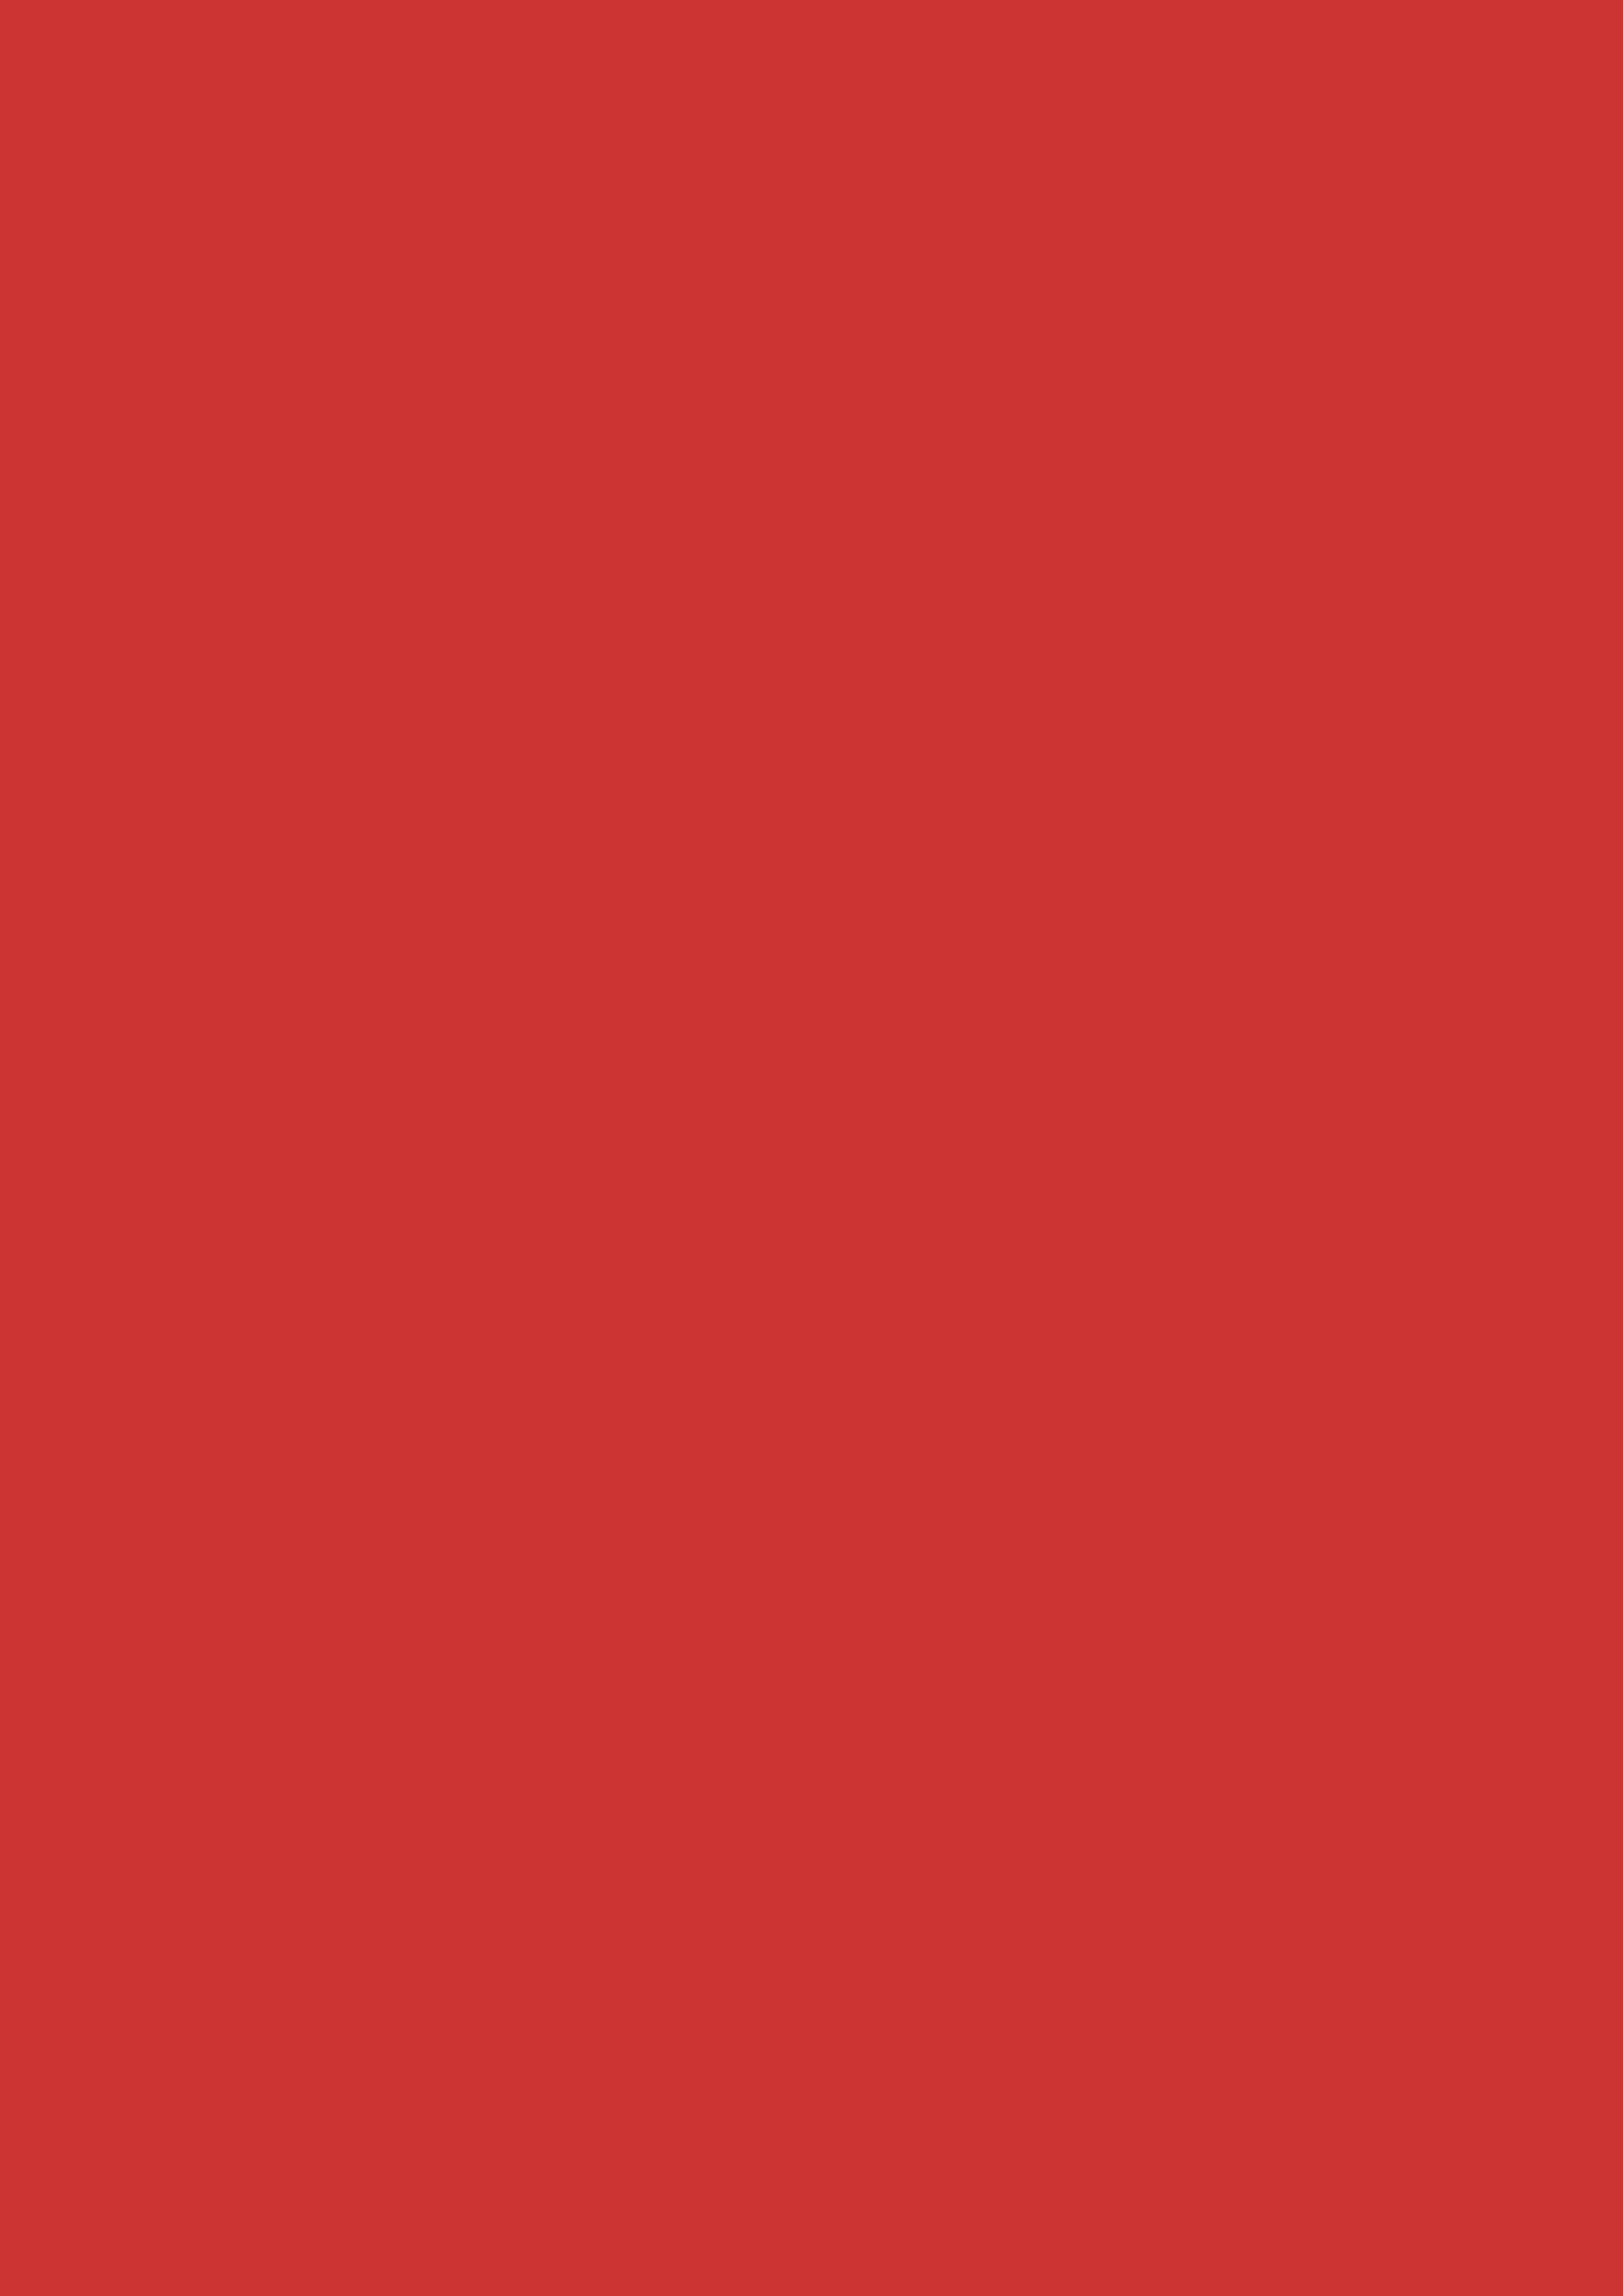 2480x3508 Persian Red Solid Color Background